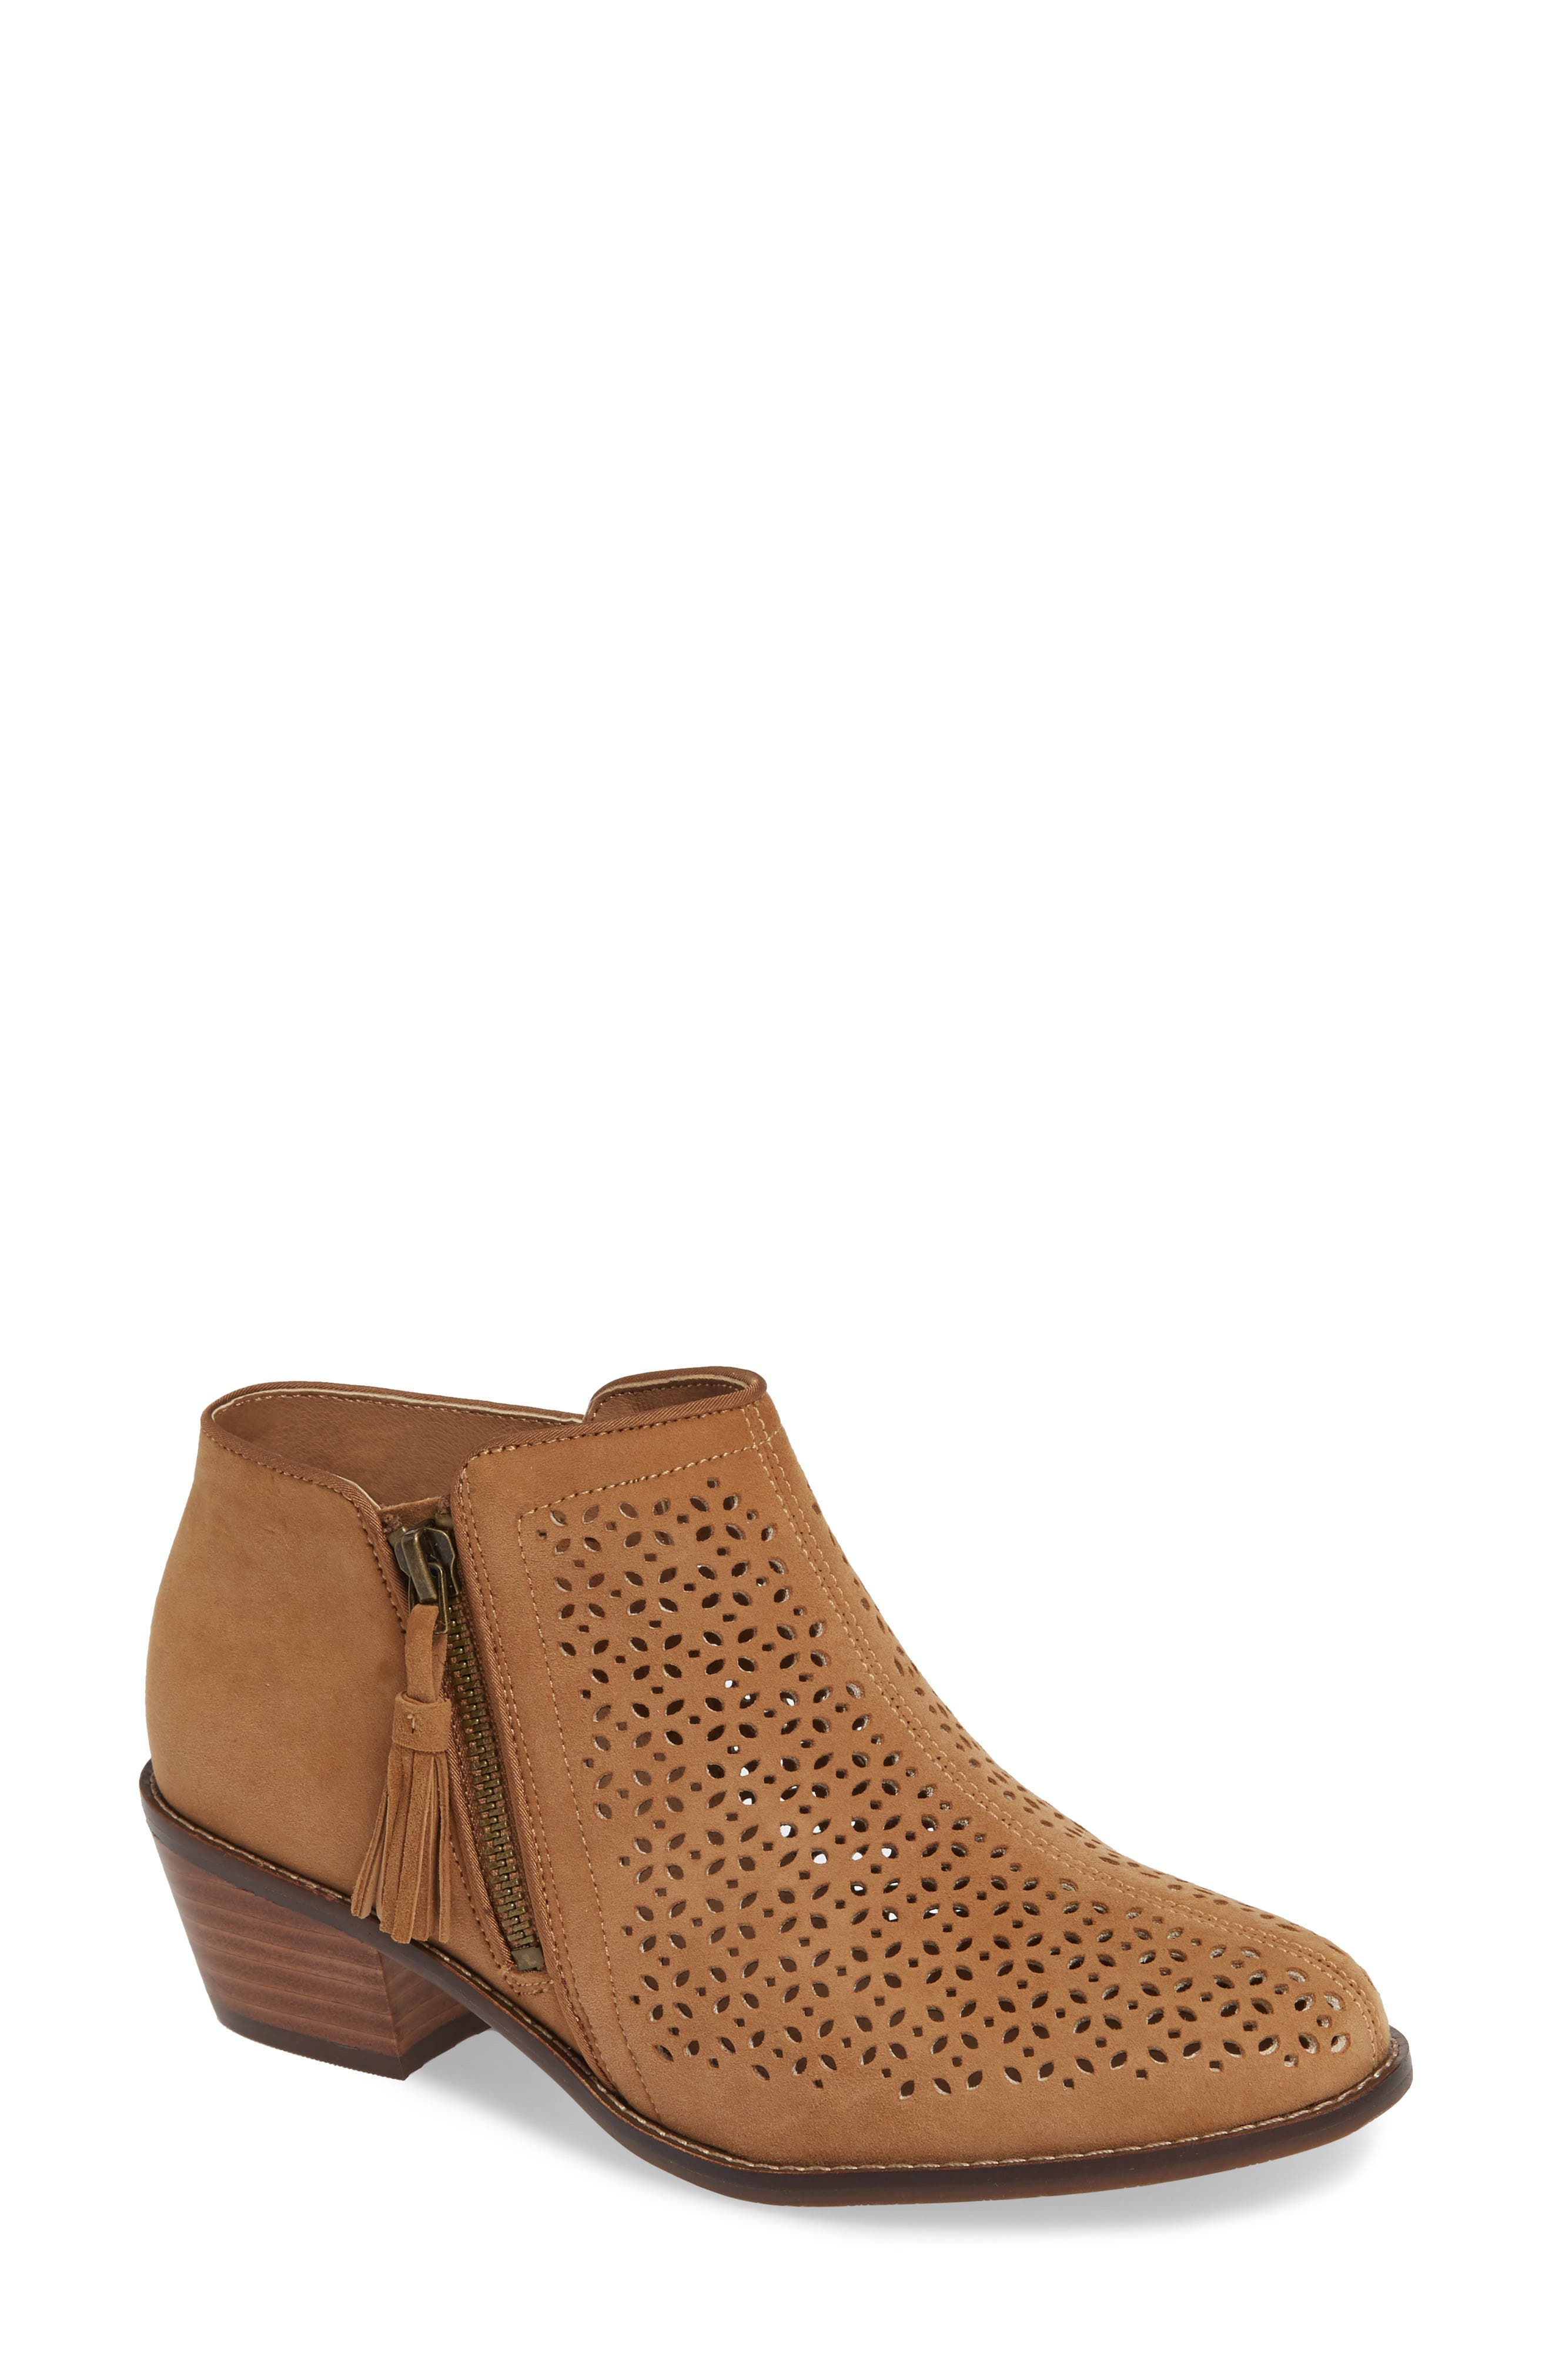 Vionic Daytona Perforated Bootie, Brown